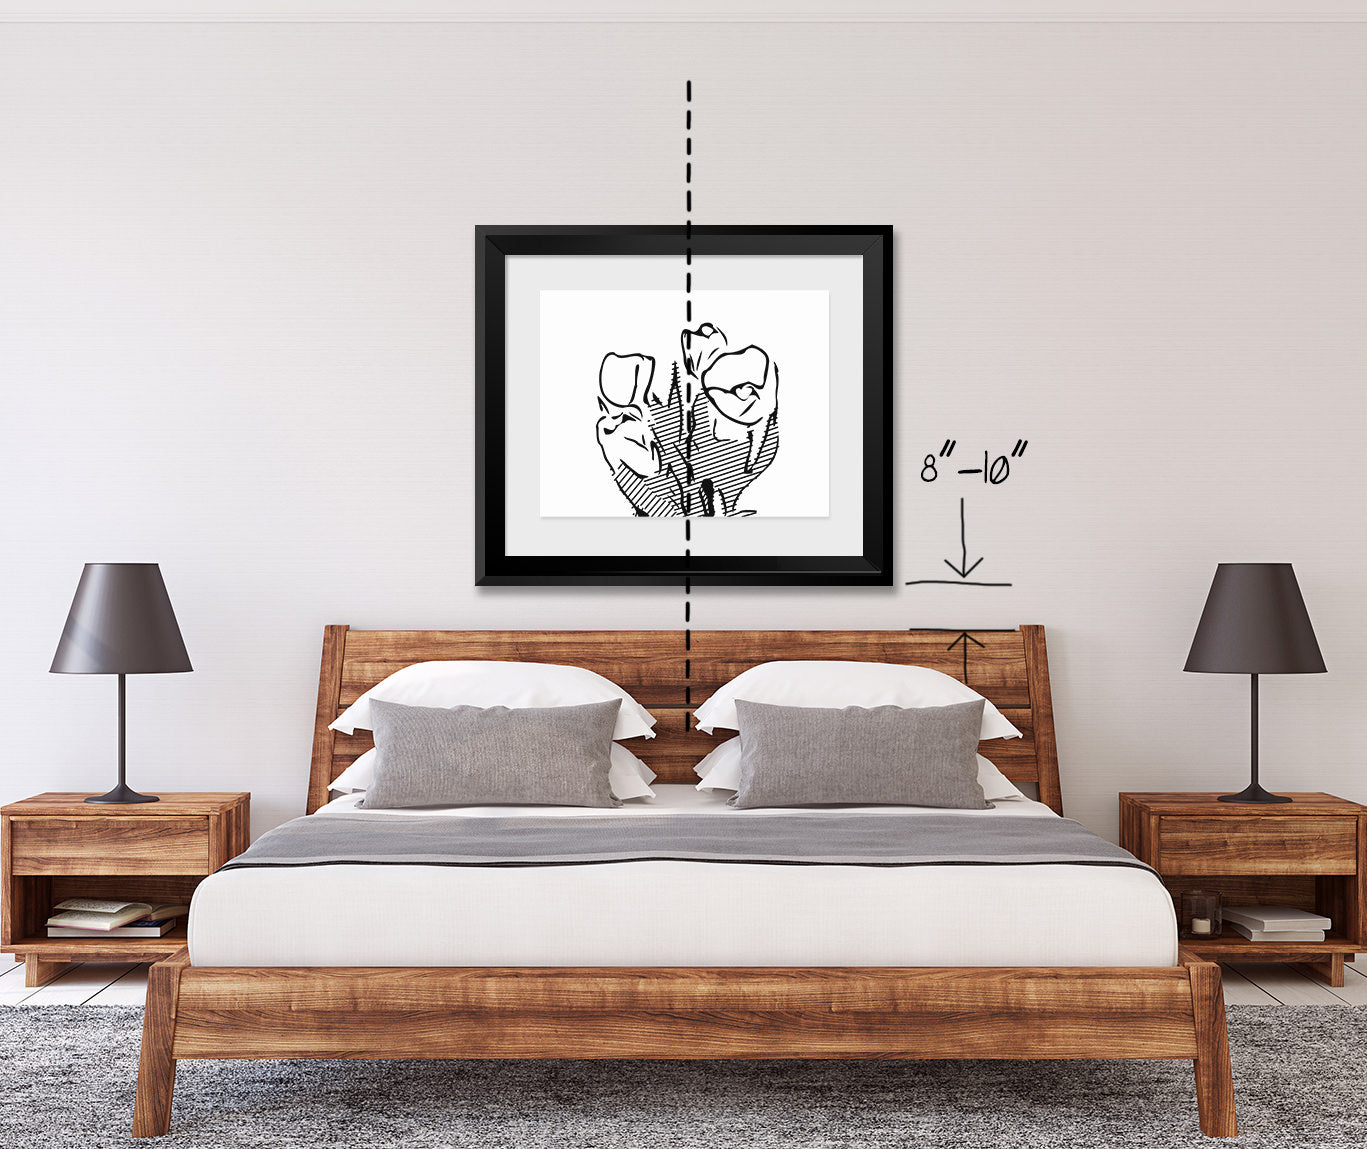 How to align artwork over a bed